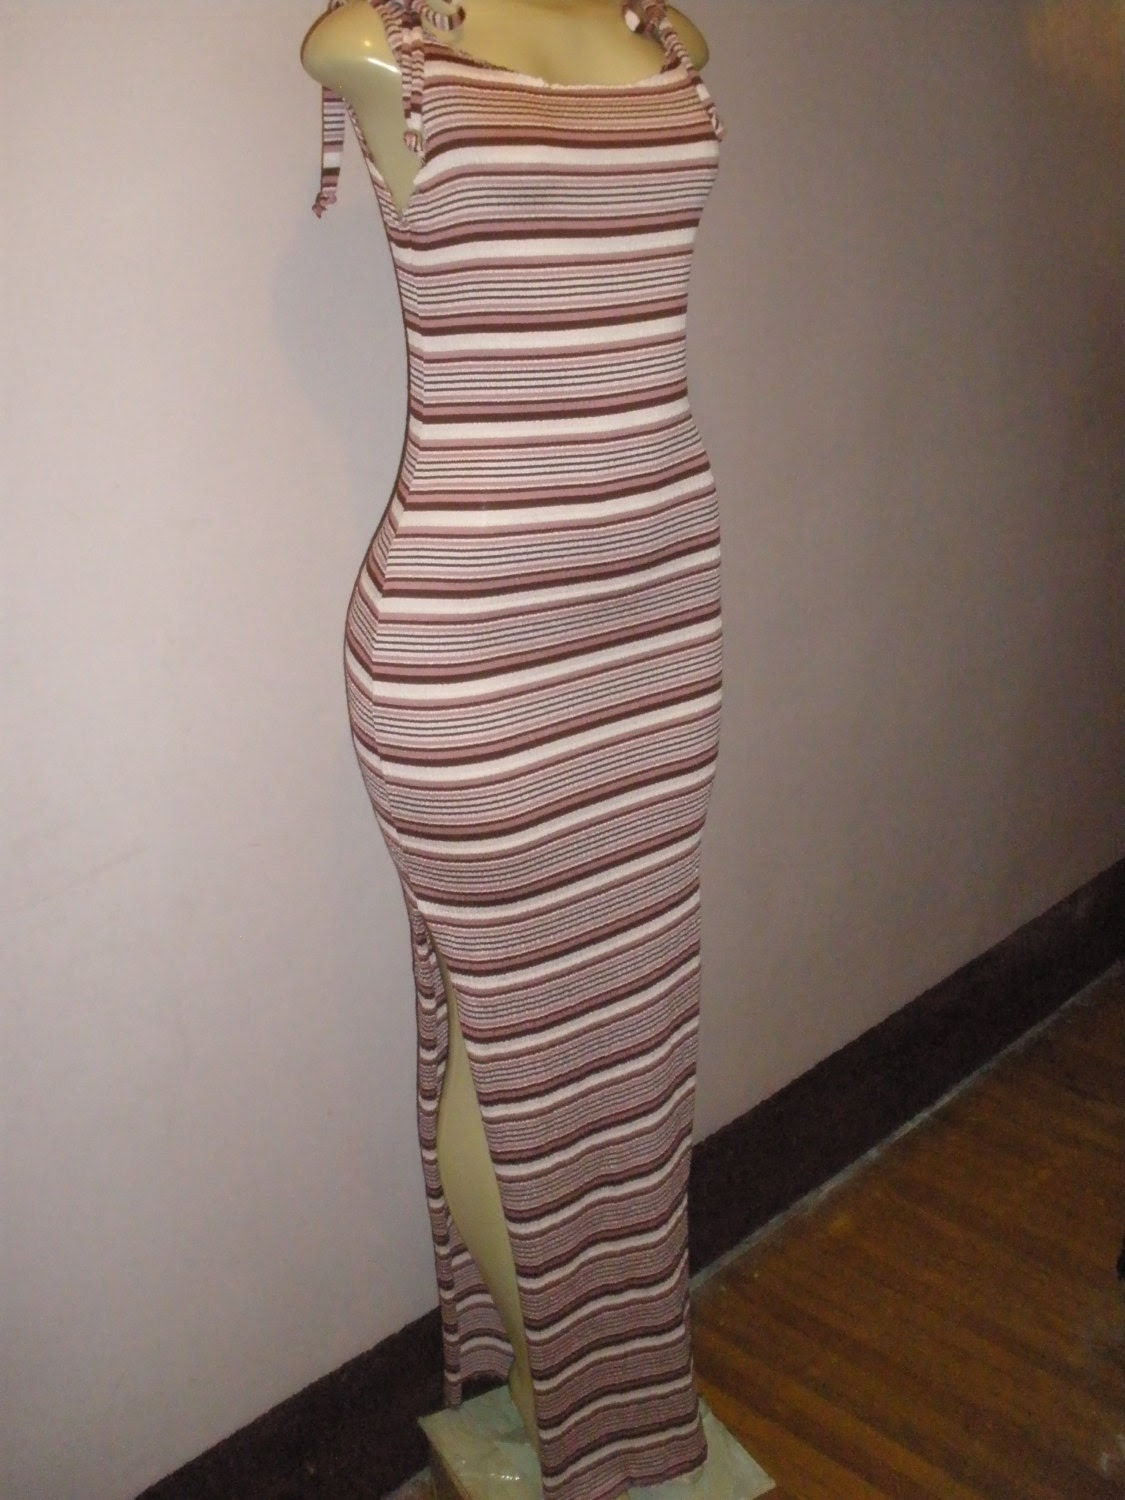 Long Tank Top Striped Summer Dress, Long Maxi Beach Sundress, Swimsuit Cover Up Size Medium/Large